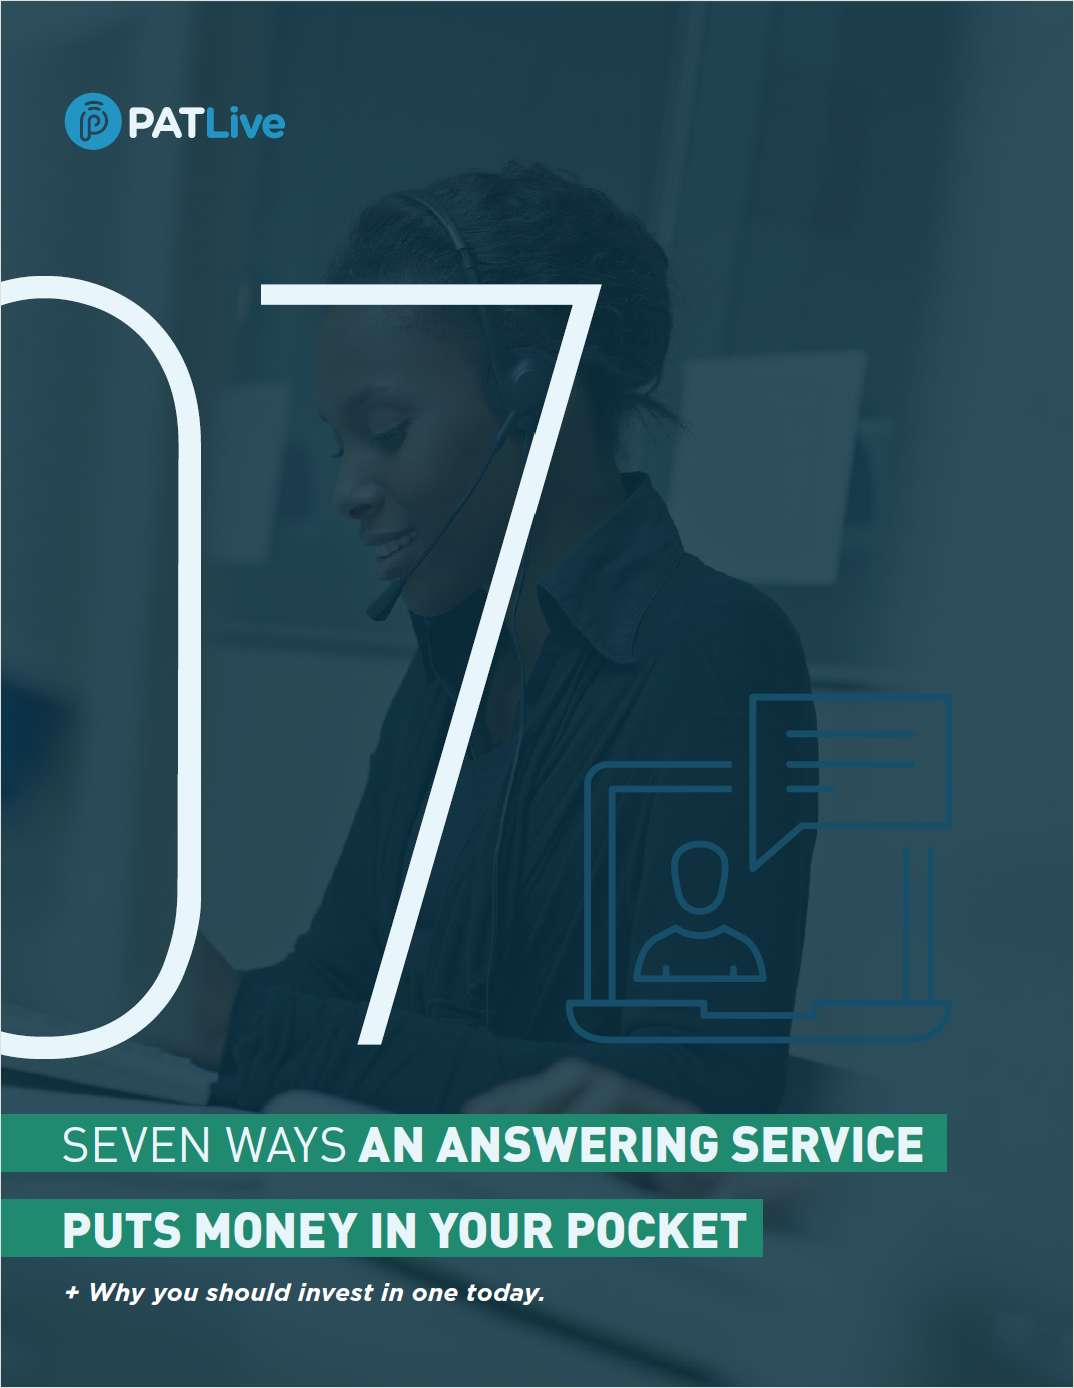 7 Ways an Answering Service Puts Money in Your Pocket